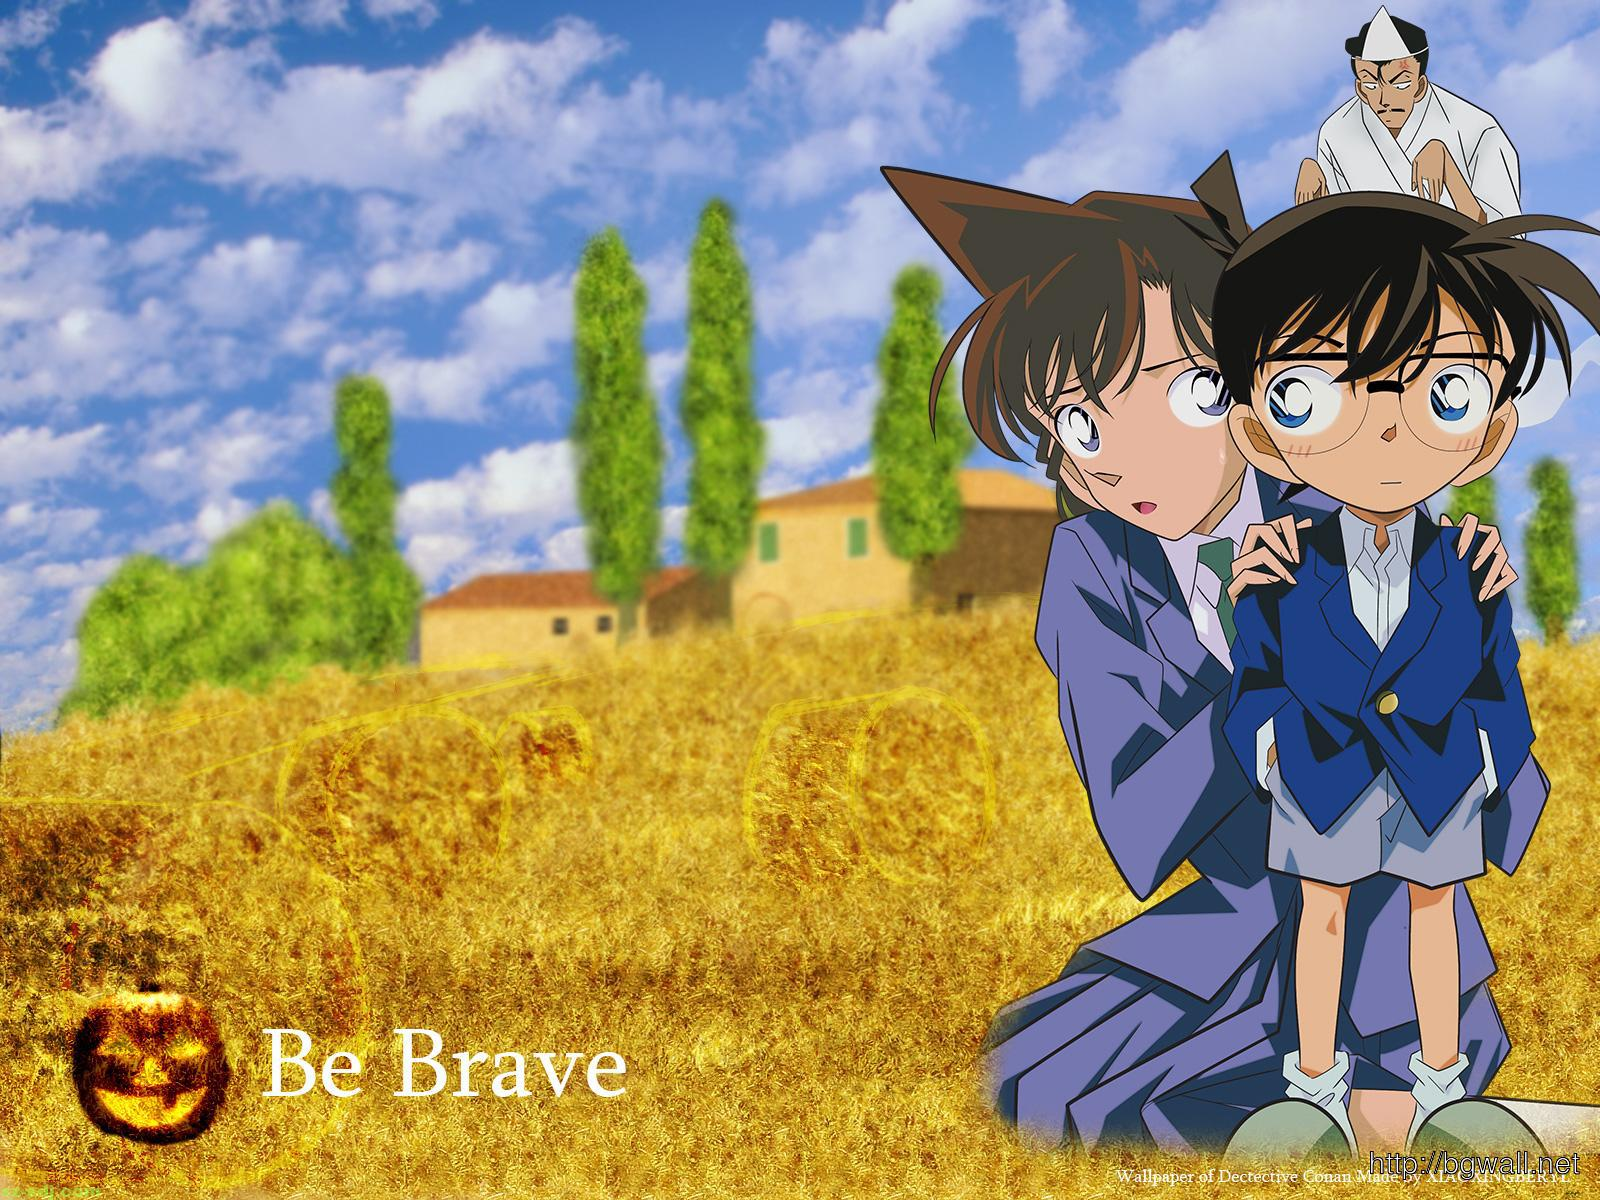 detective-conan-image-cartoons-wallpaper